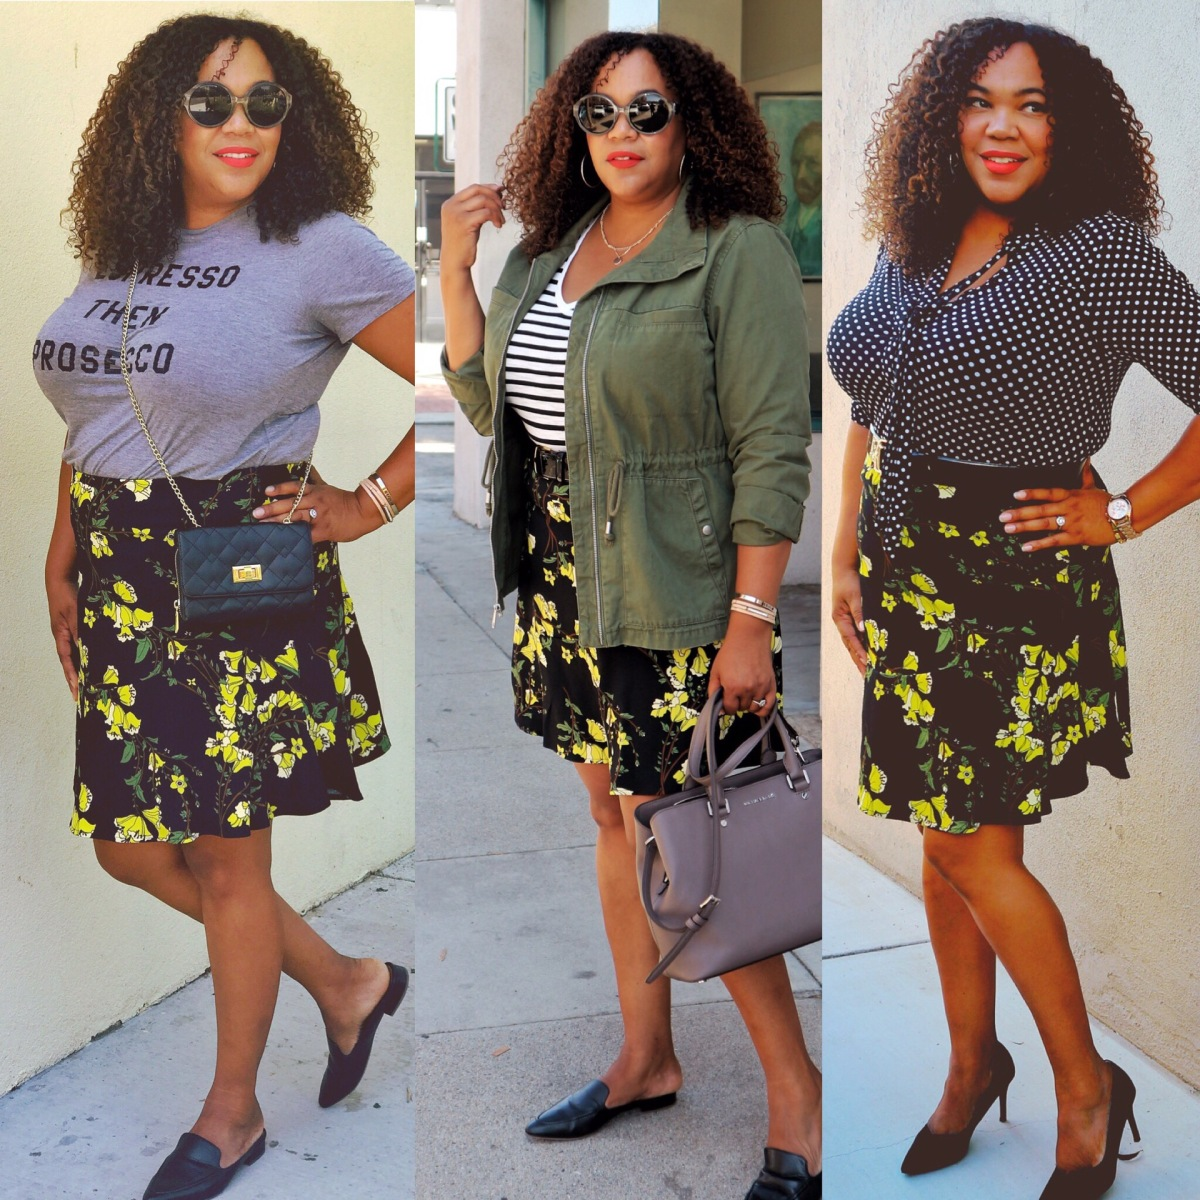 A Floral Skirt Worn Three Ways